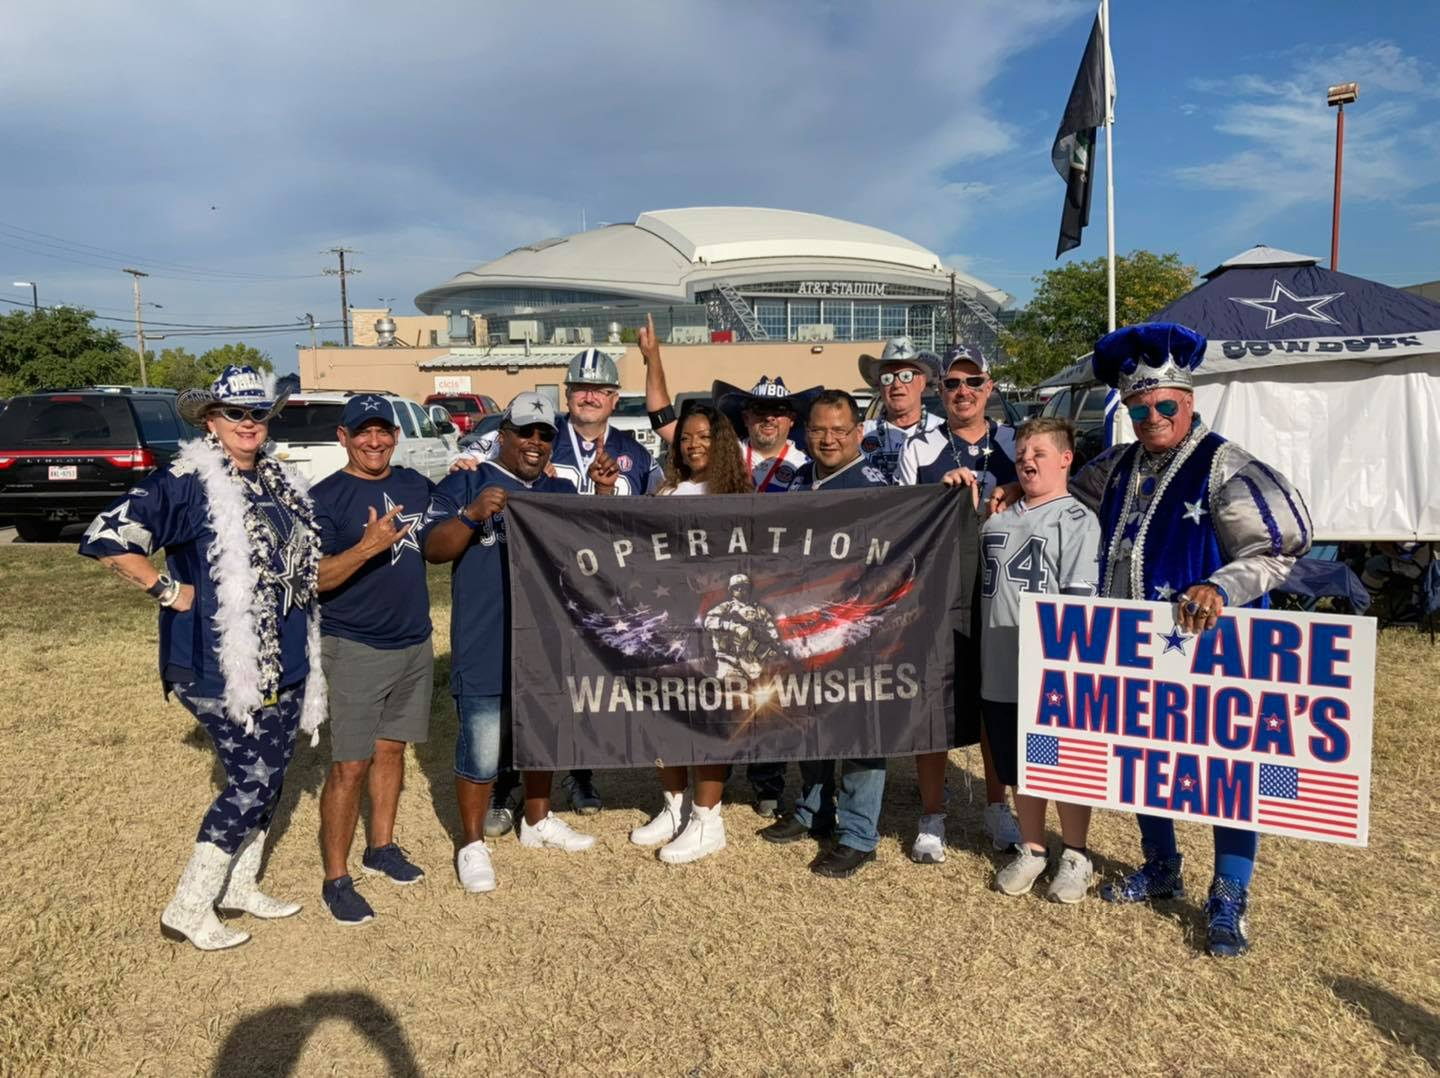 Wish Granted for 27+ Year Warrior at Dallas Cowboys game.